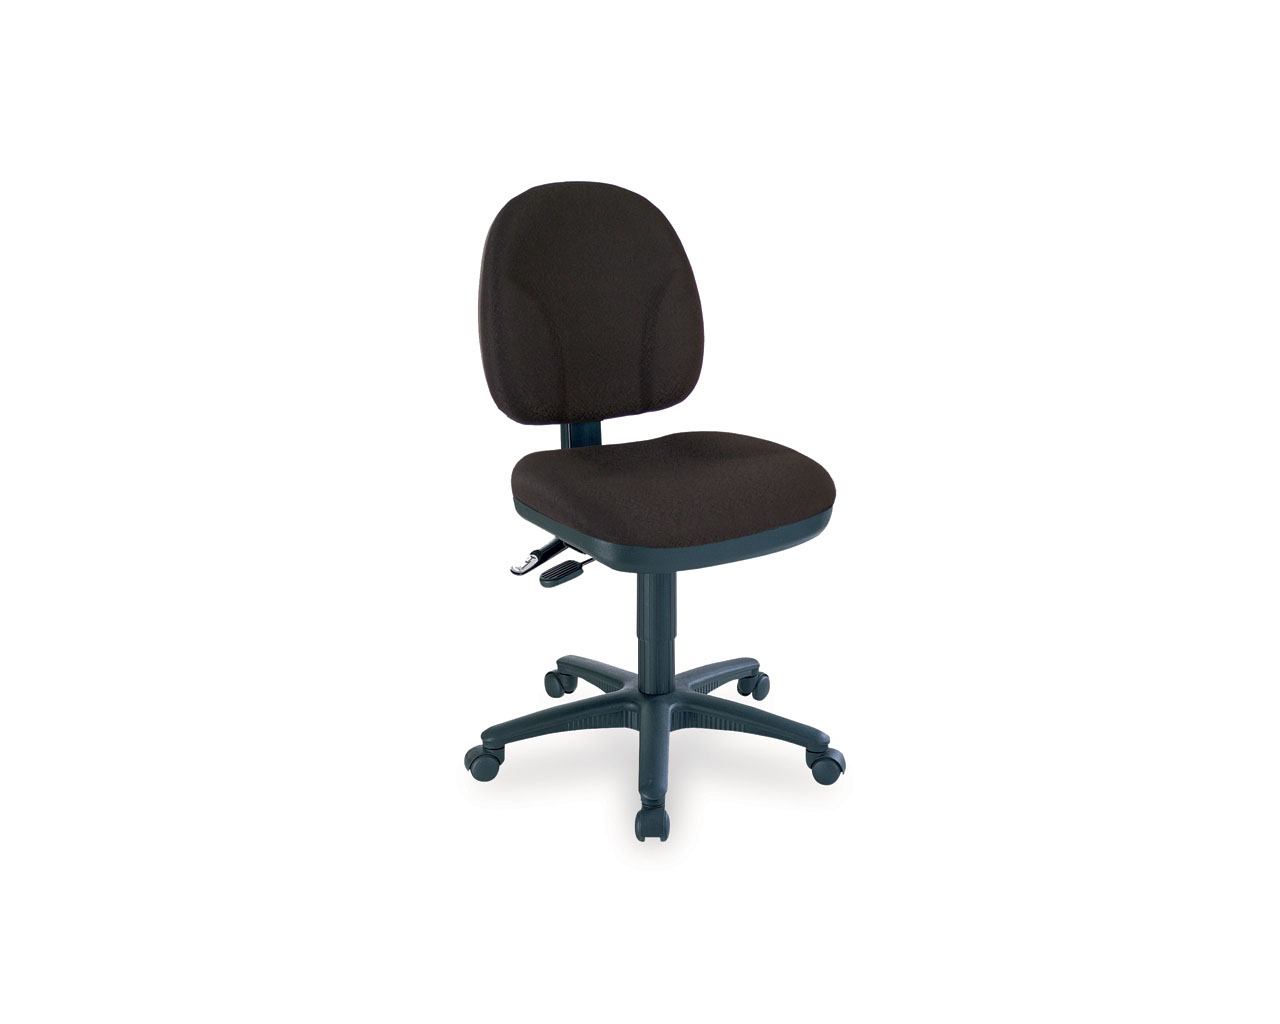 office chair kelowna officemax white chairs and seating ergonomic desk